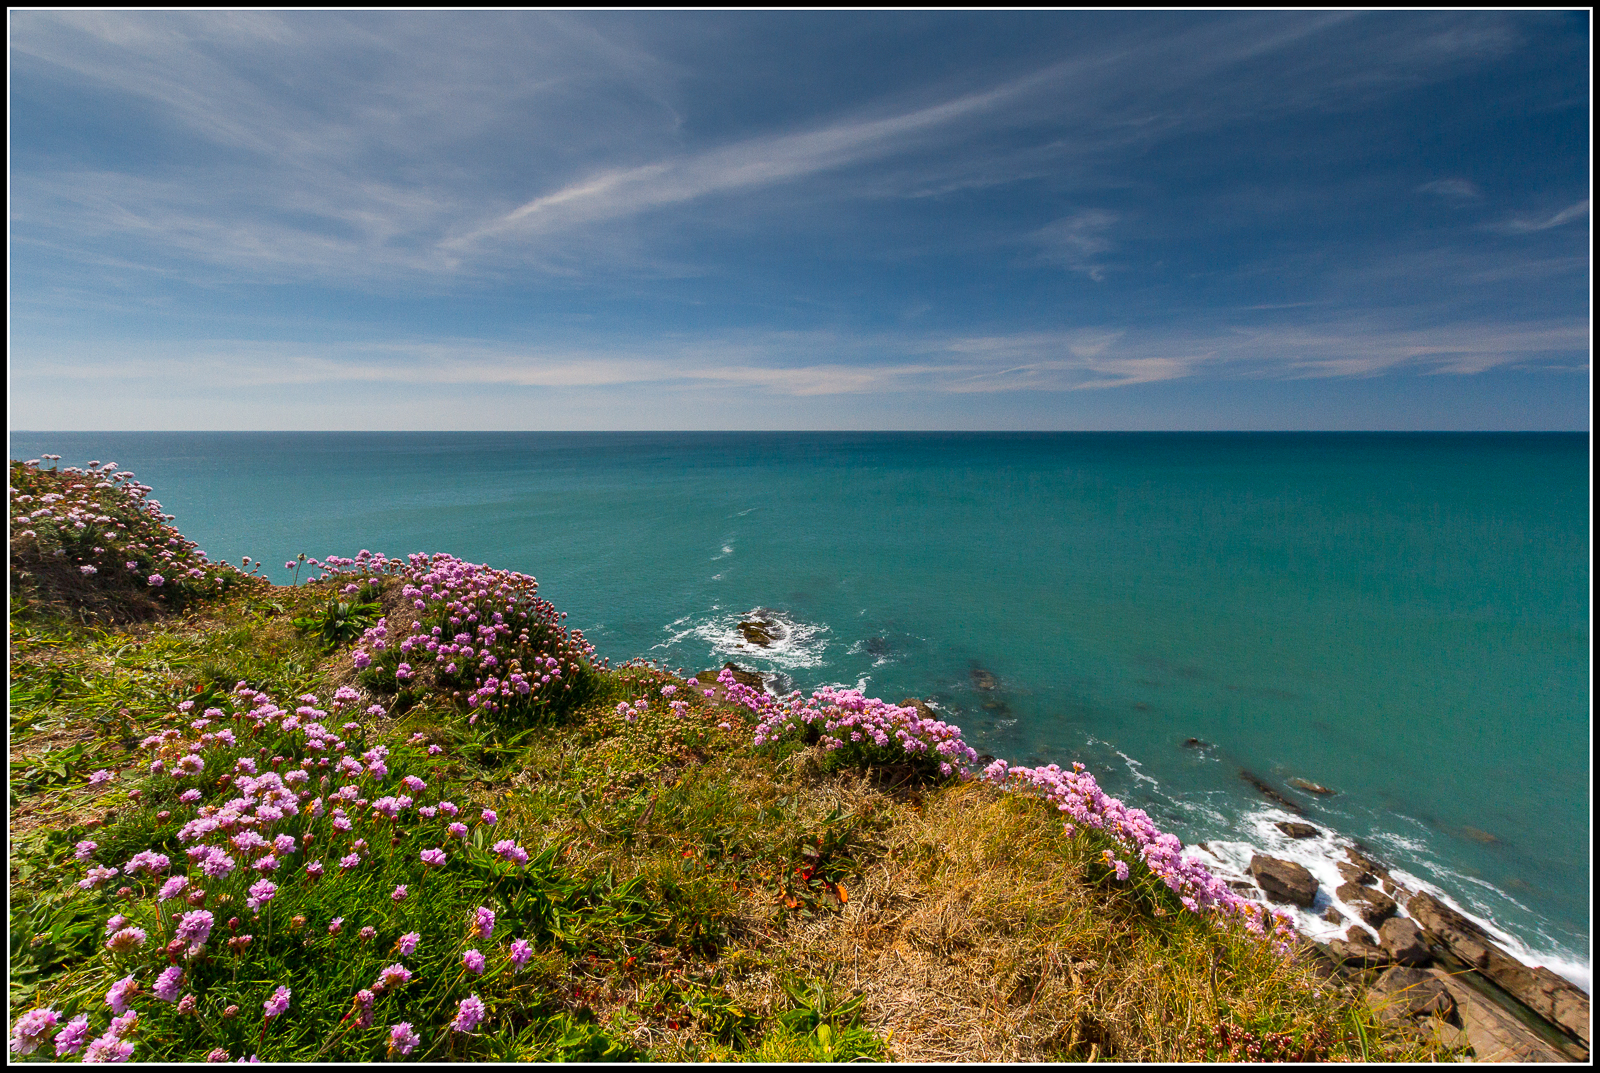 Stunning photograph of the Cornish coastline taken by a guest staying at Gwelmor self catering holiday cottage in Widemouth Bay north Cornwall